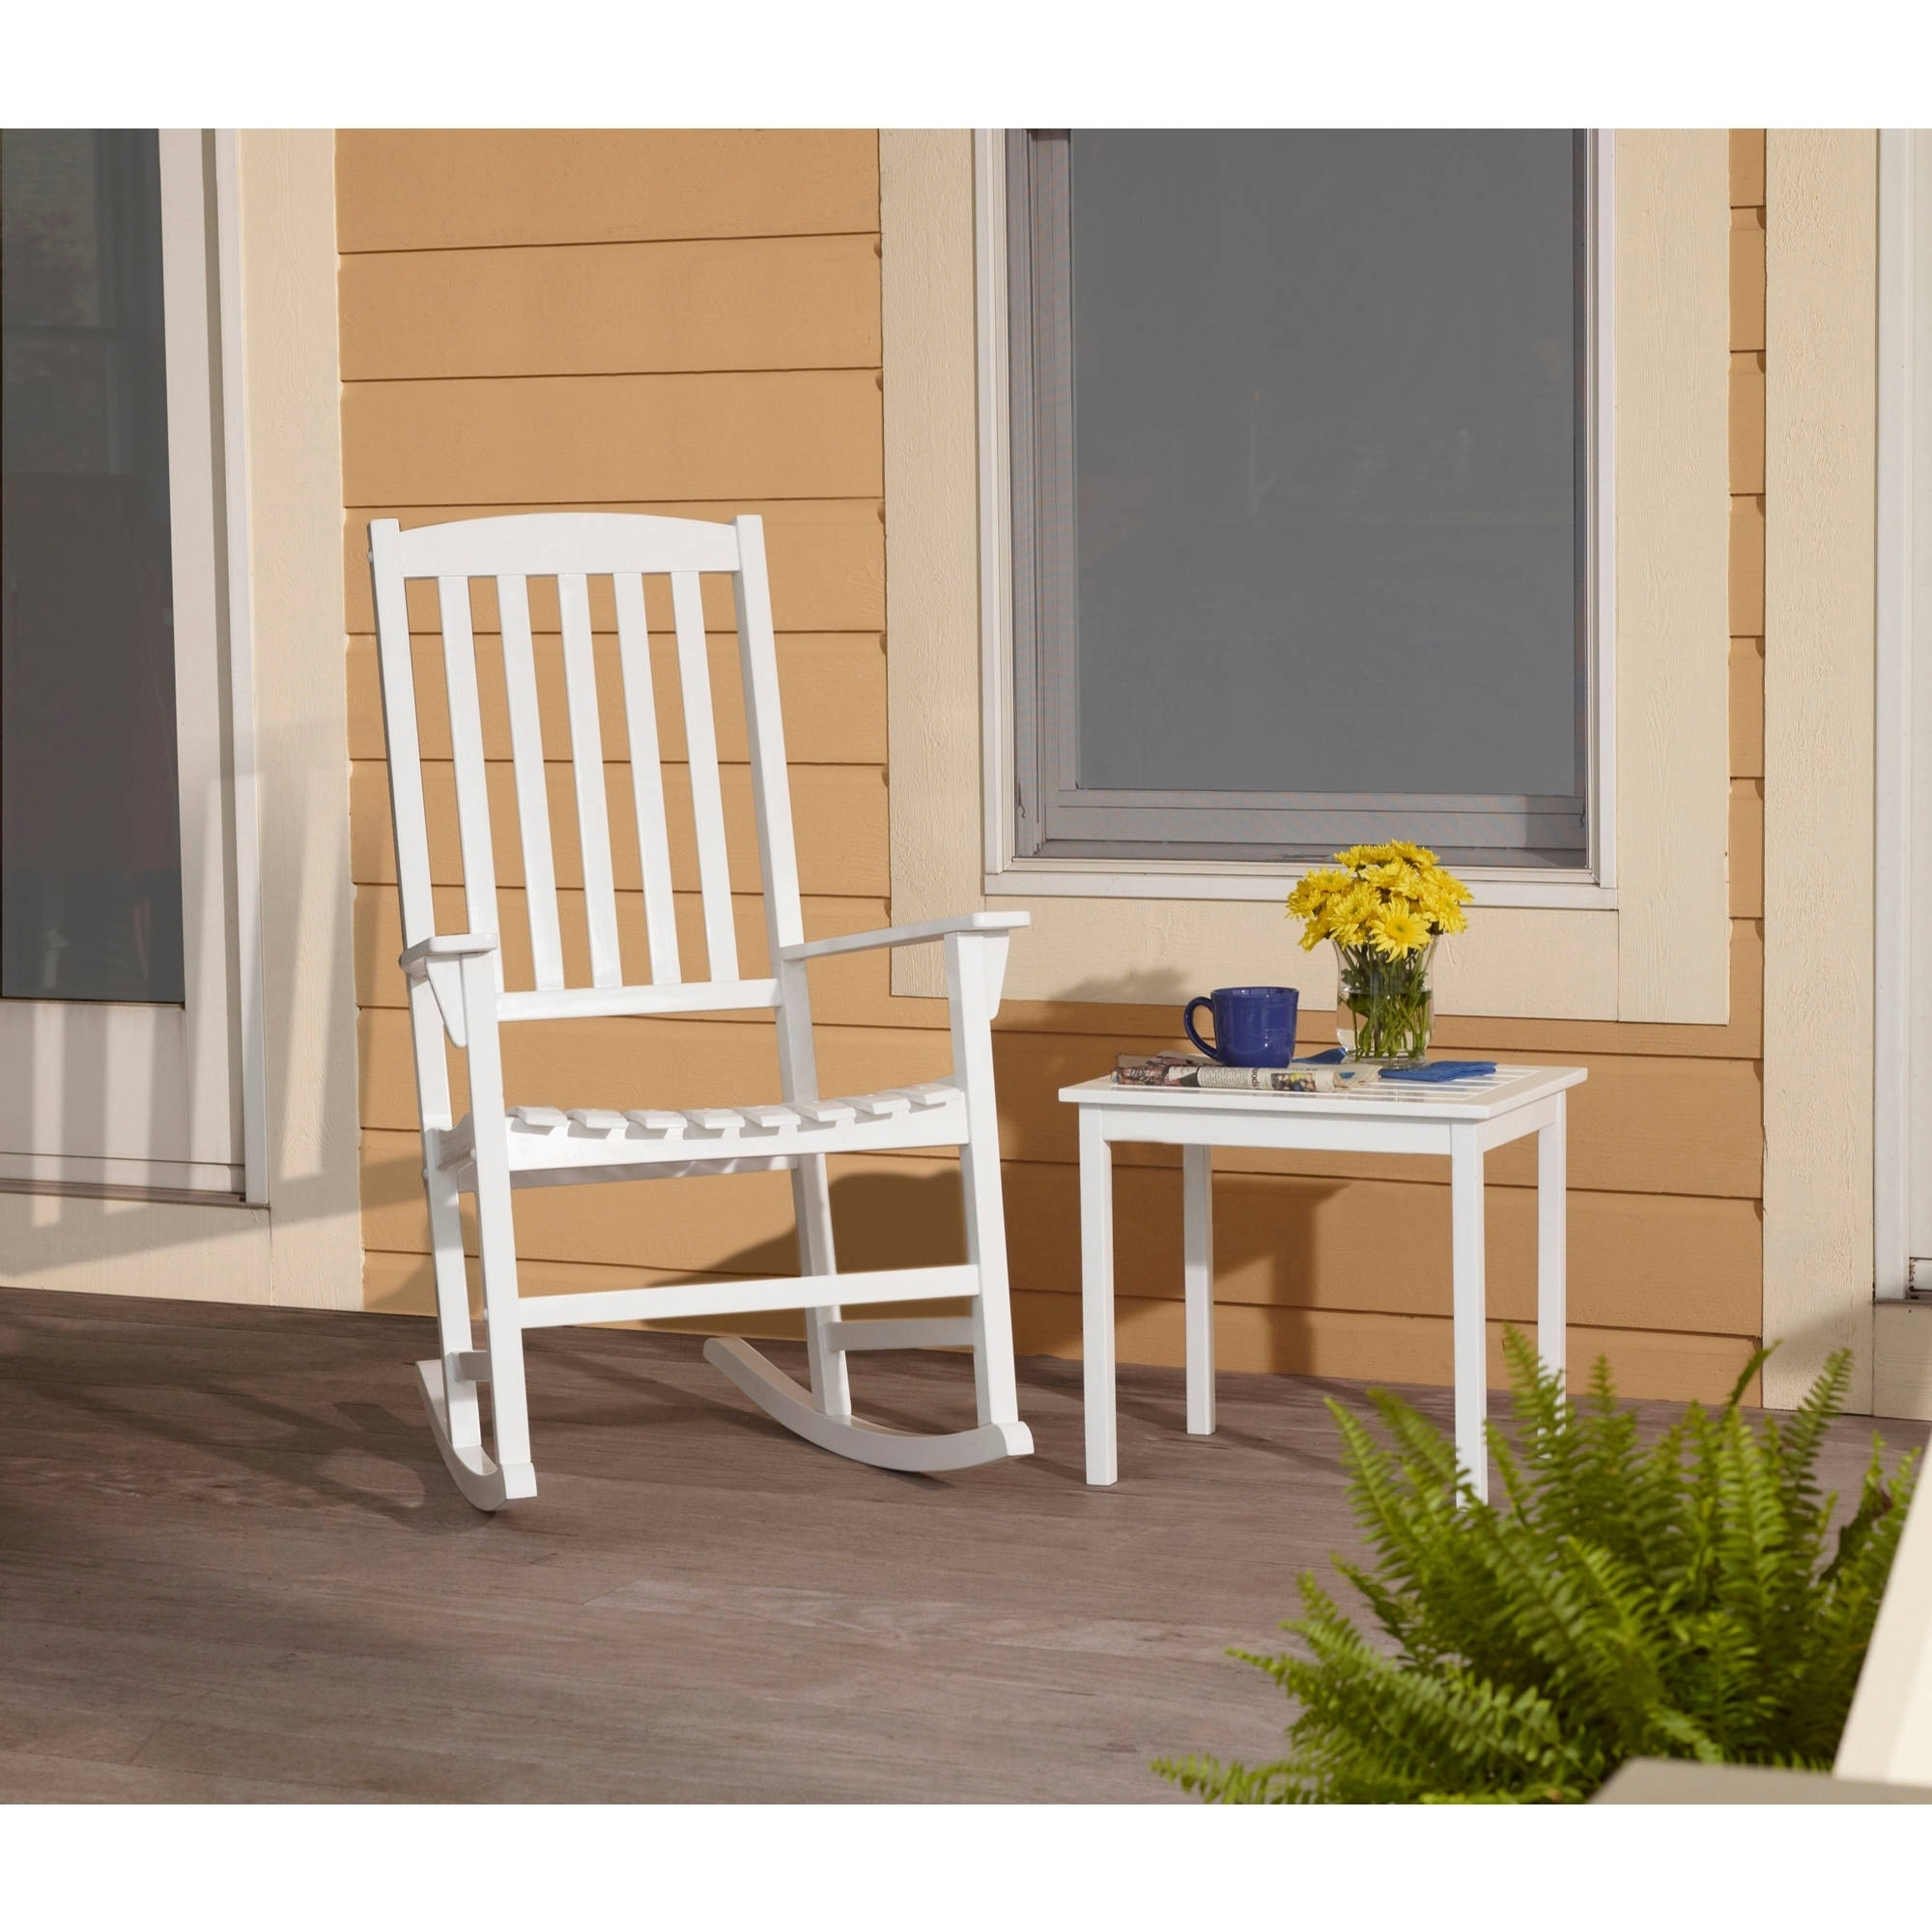 Wooden Front Porch Rocking Chairs With Regard To Most Current Outdoor Rocking Chairs With Table (View 19 of 20)